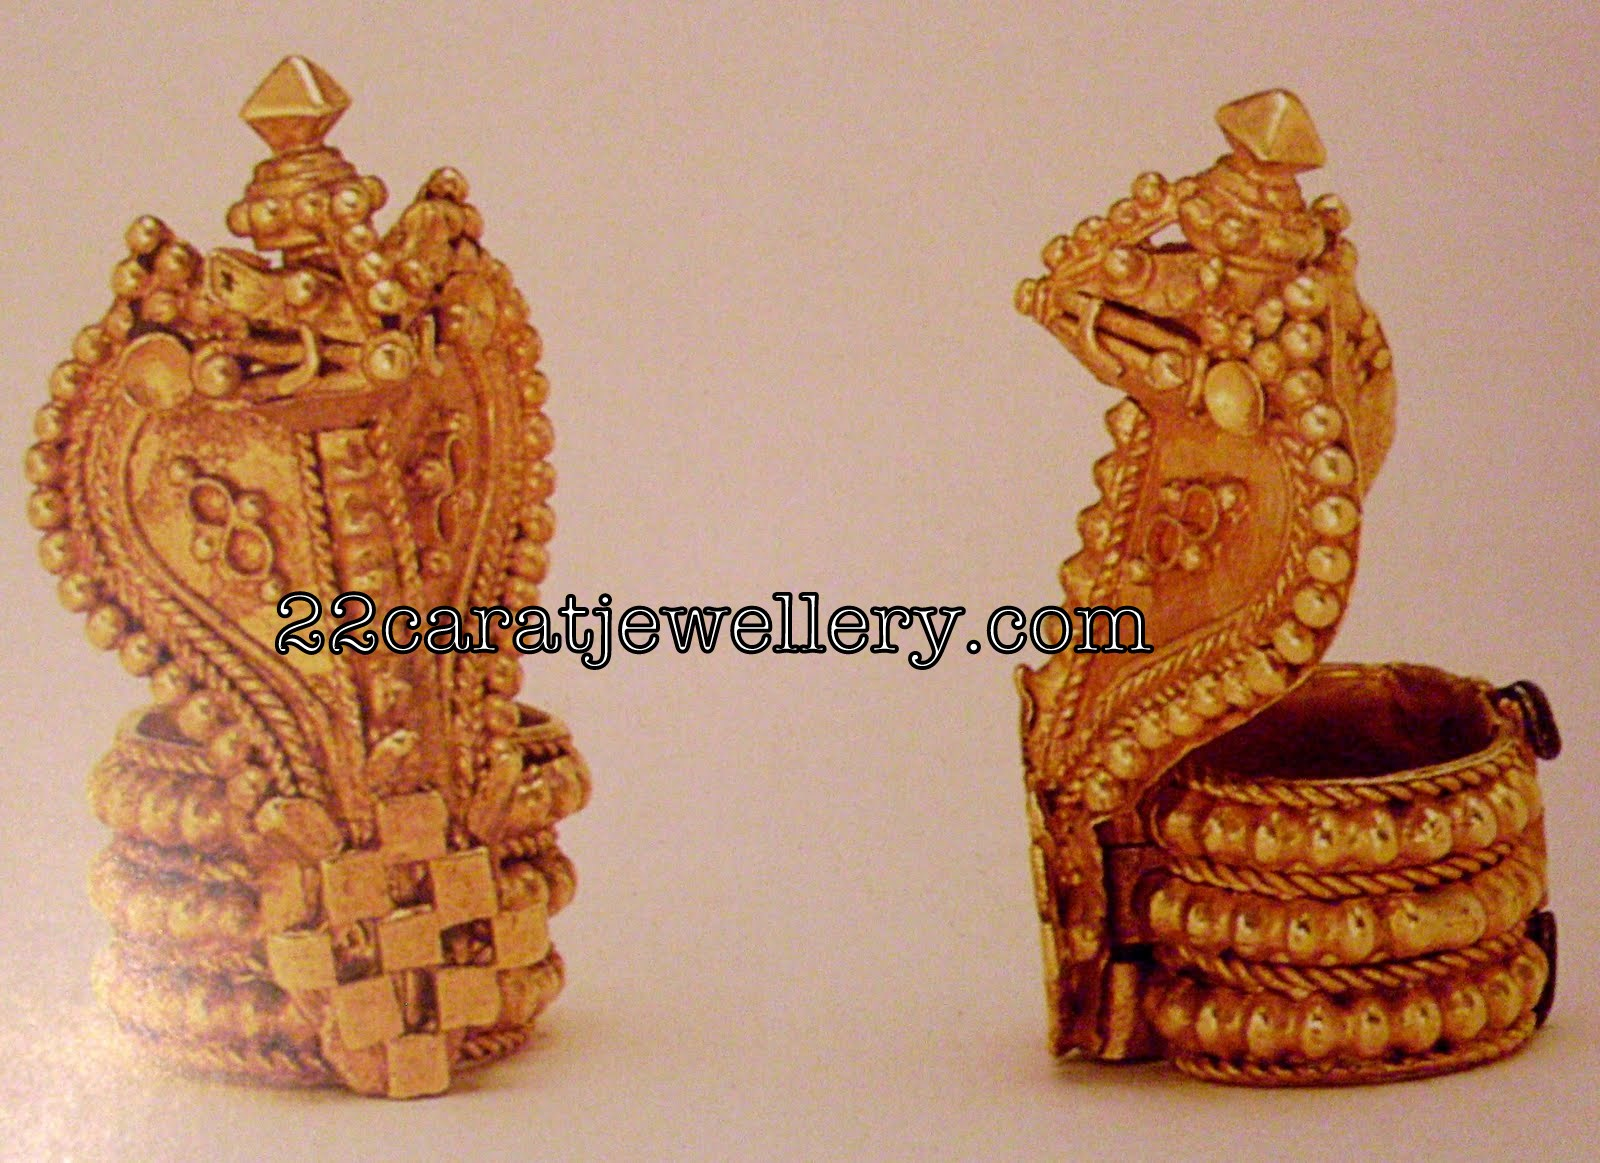 Gold necklace designs in grt jewellers - Gold Naga Pratima From Grt Jewellery